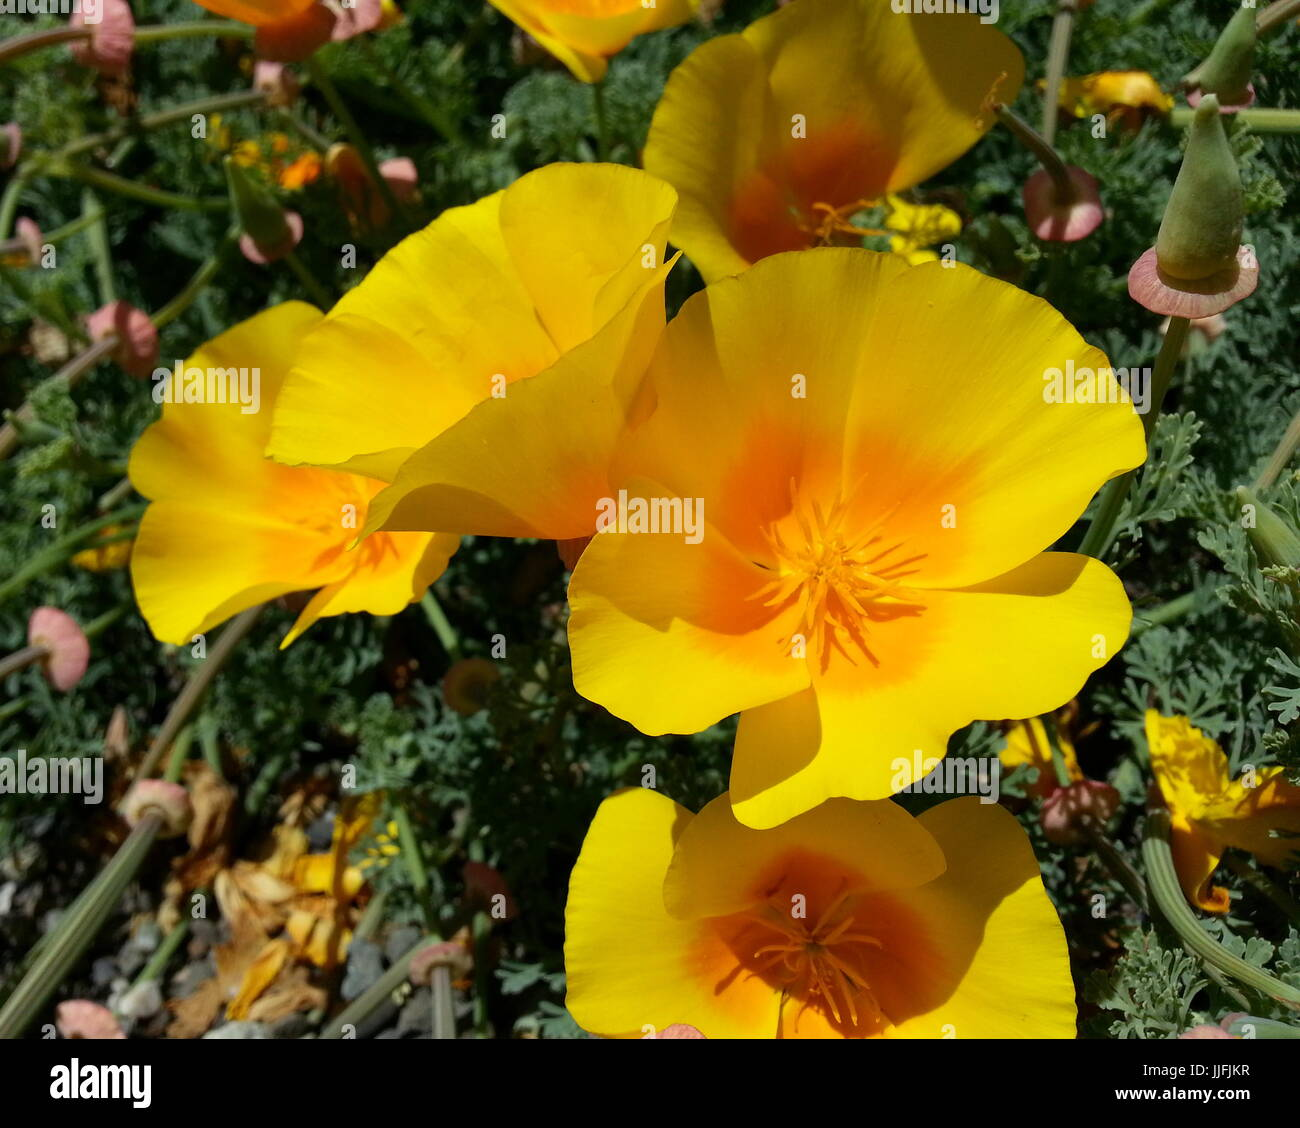 Close Up Of Yellow Poppies Stock Photo 149090699 Alamy